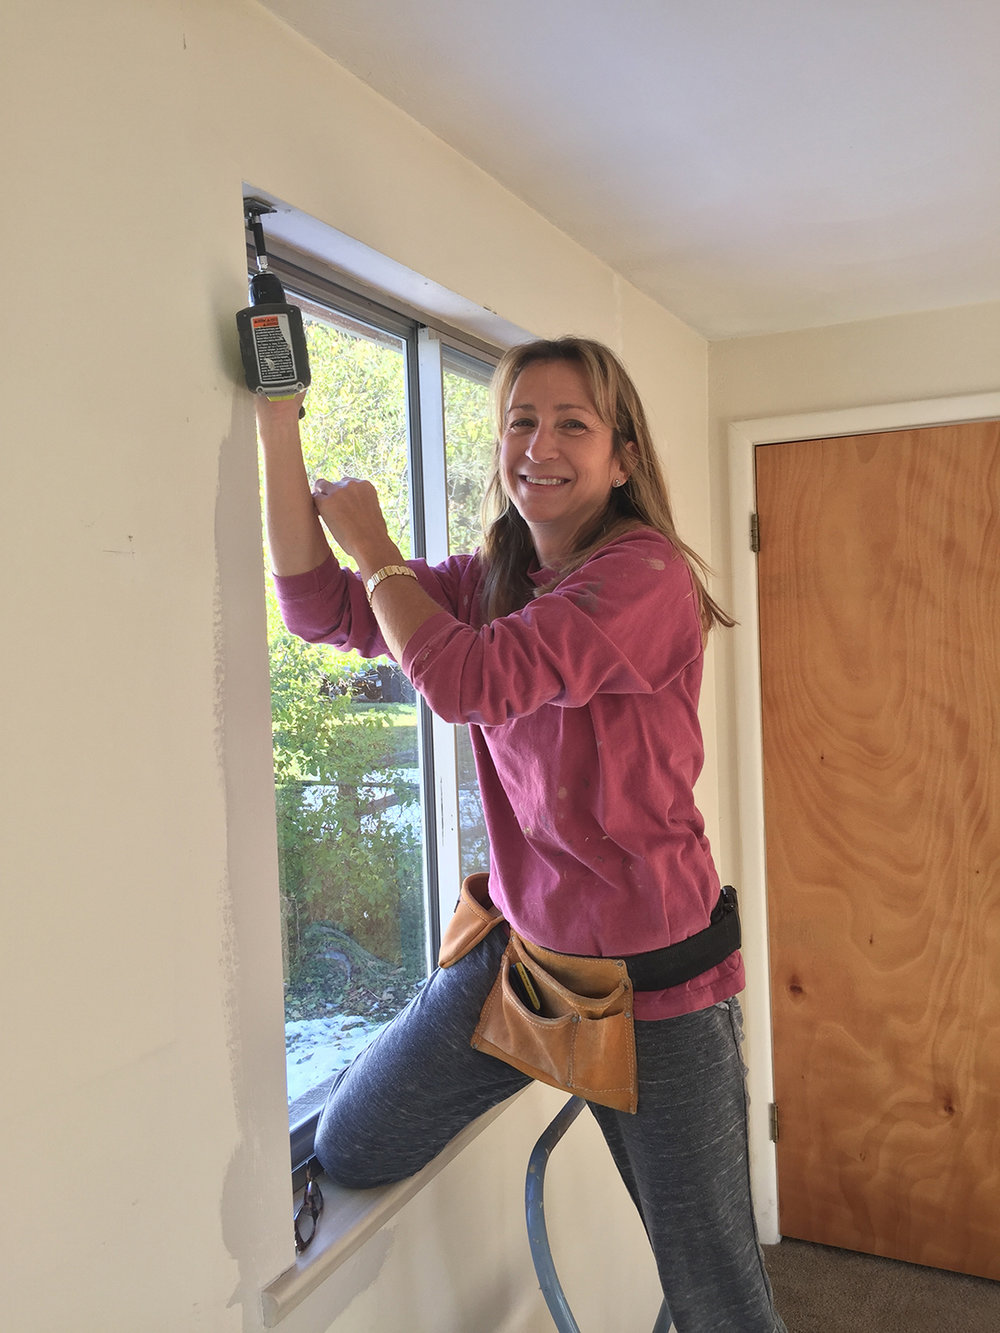 Ashley installing window hardware